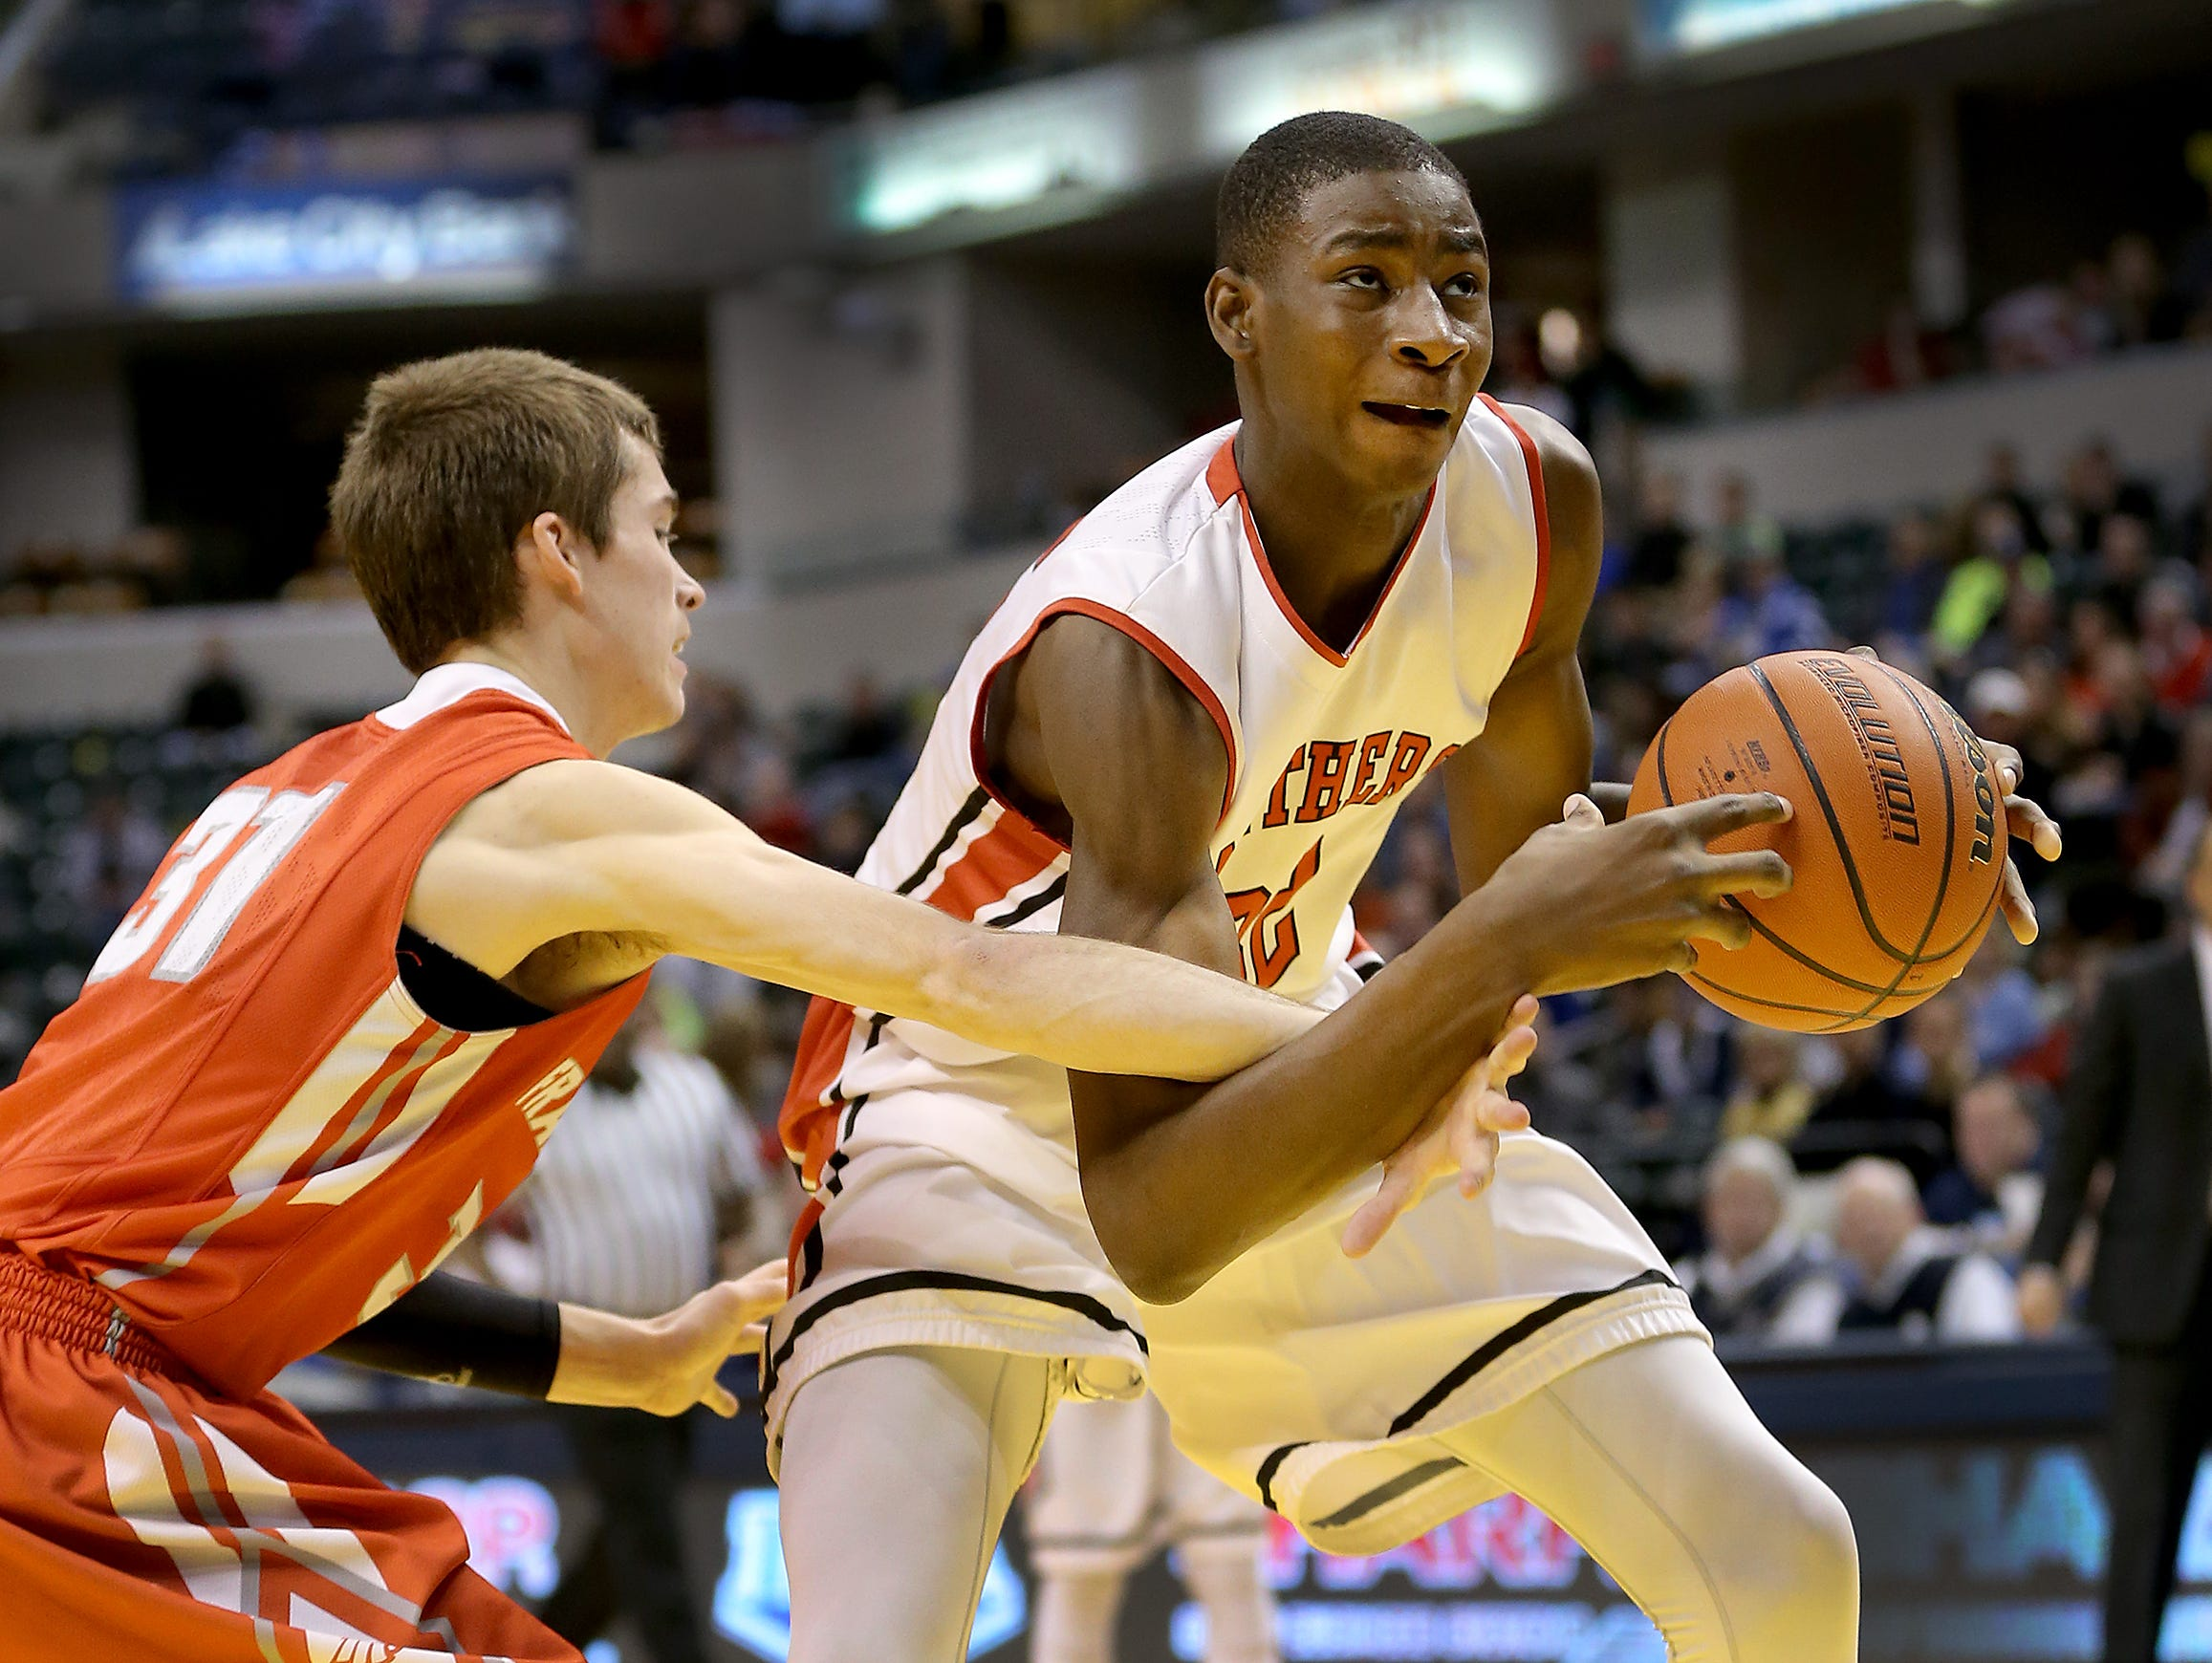 Park Tudor's Jaren Jackson Jr., is fouled by Frankton's Austin Compton during the ISHAA 2A State Championship game March 28, 2015.